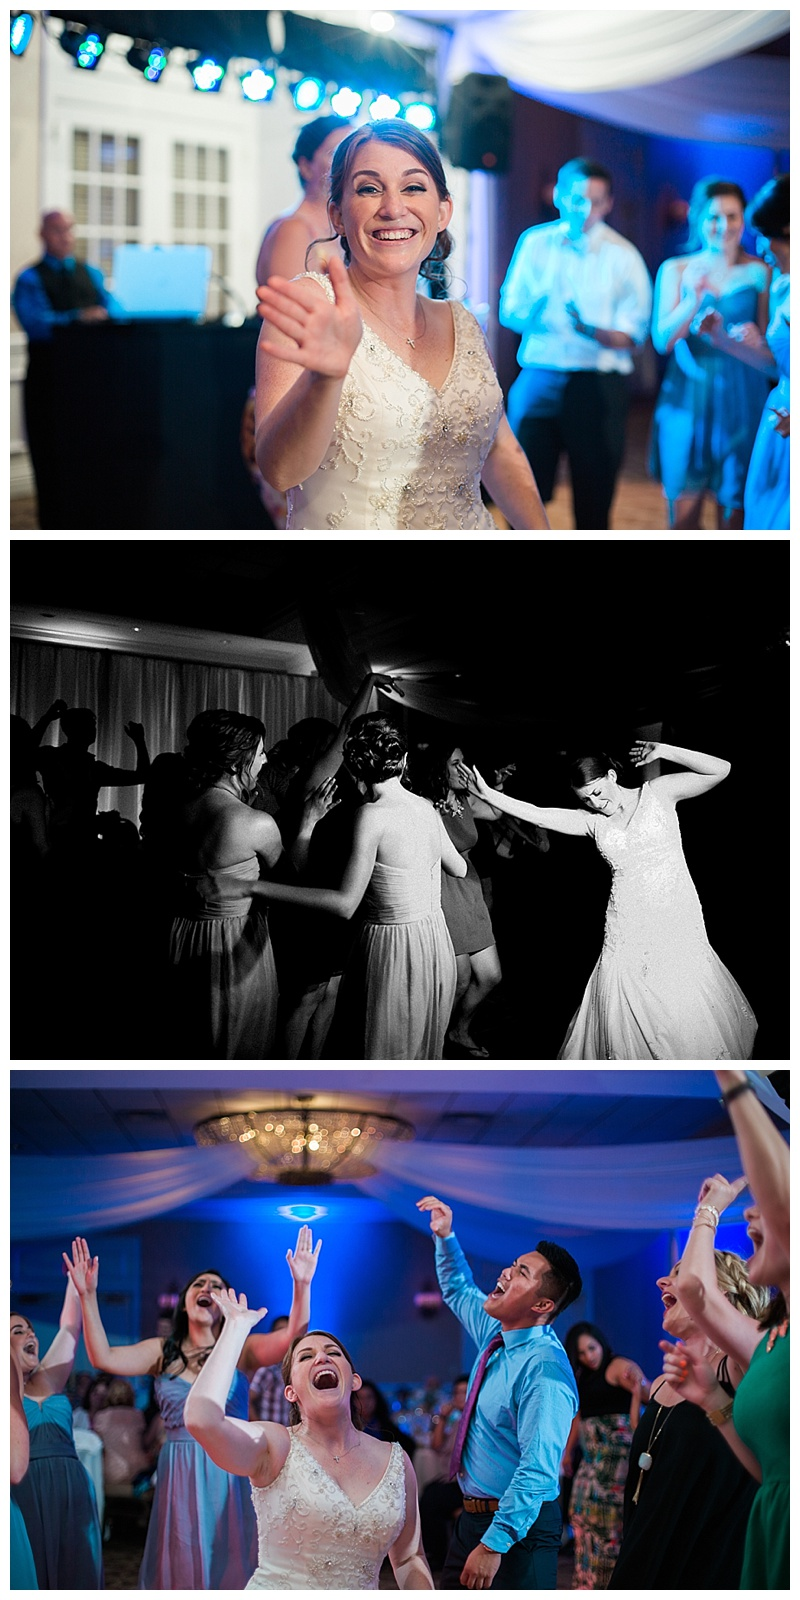 Wedding Dance - Best Wedding Photographer in san antonio